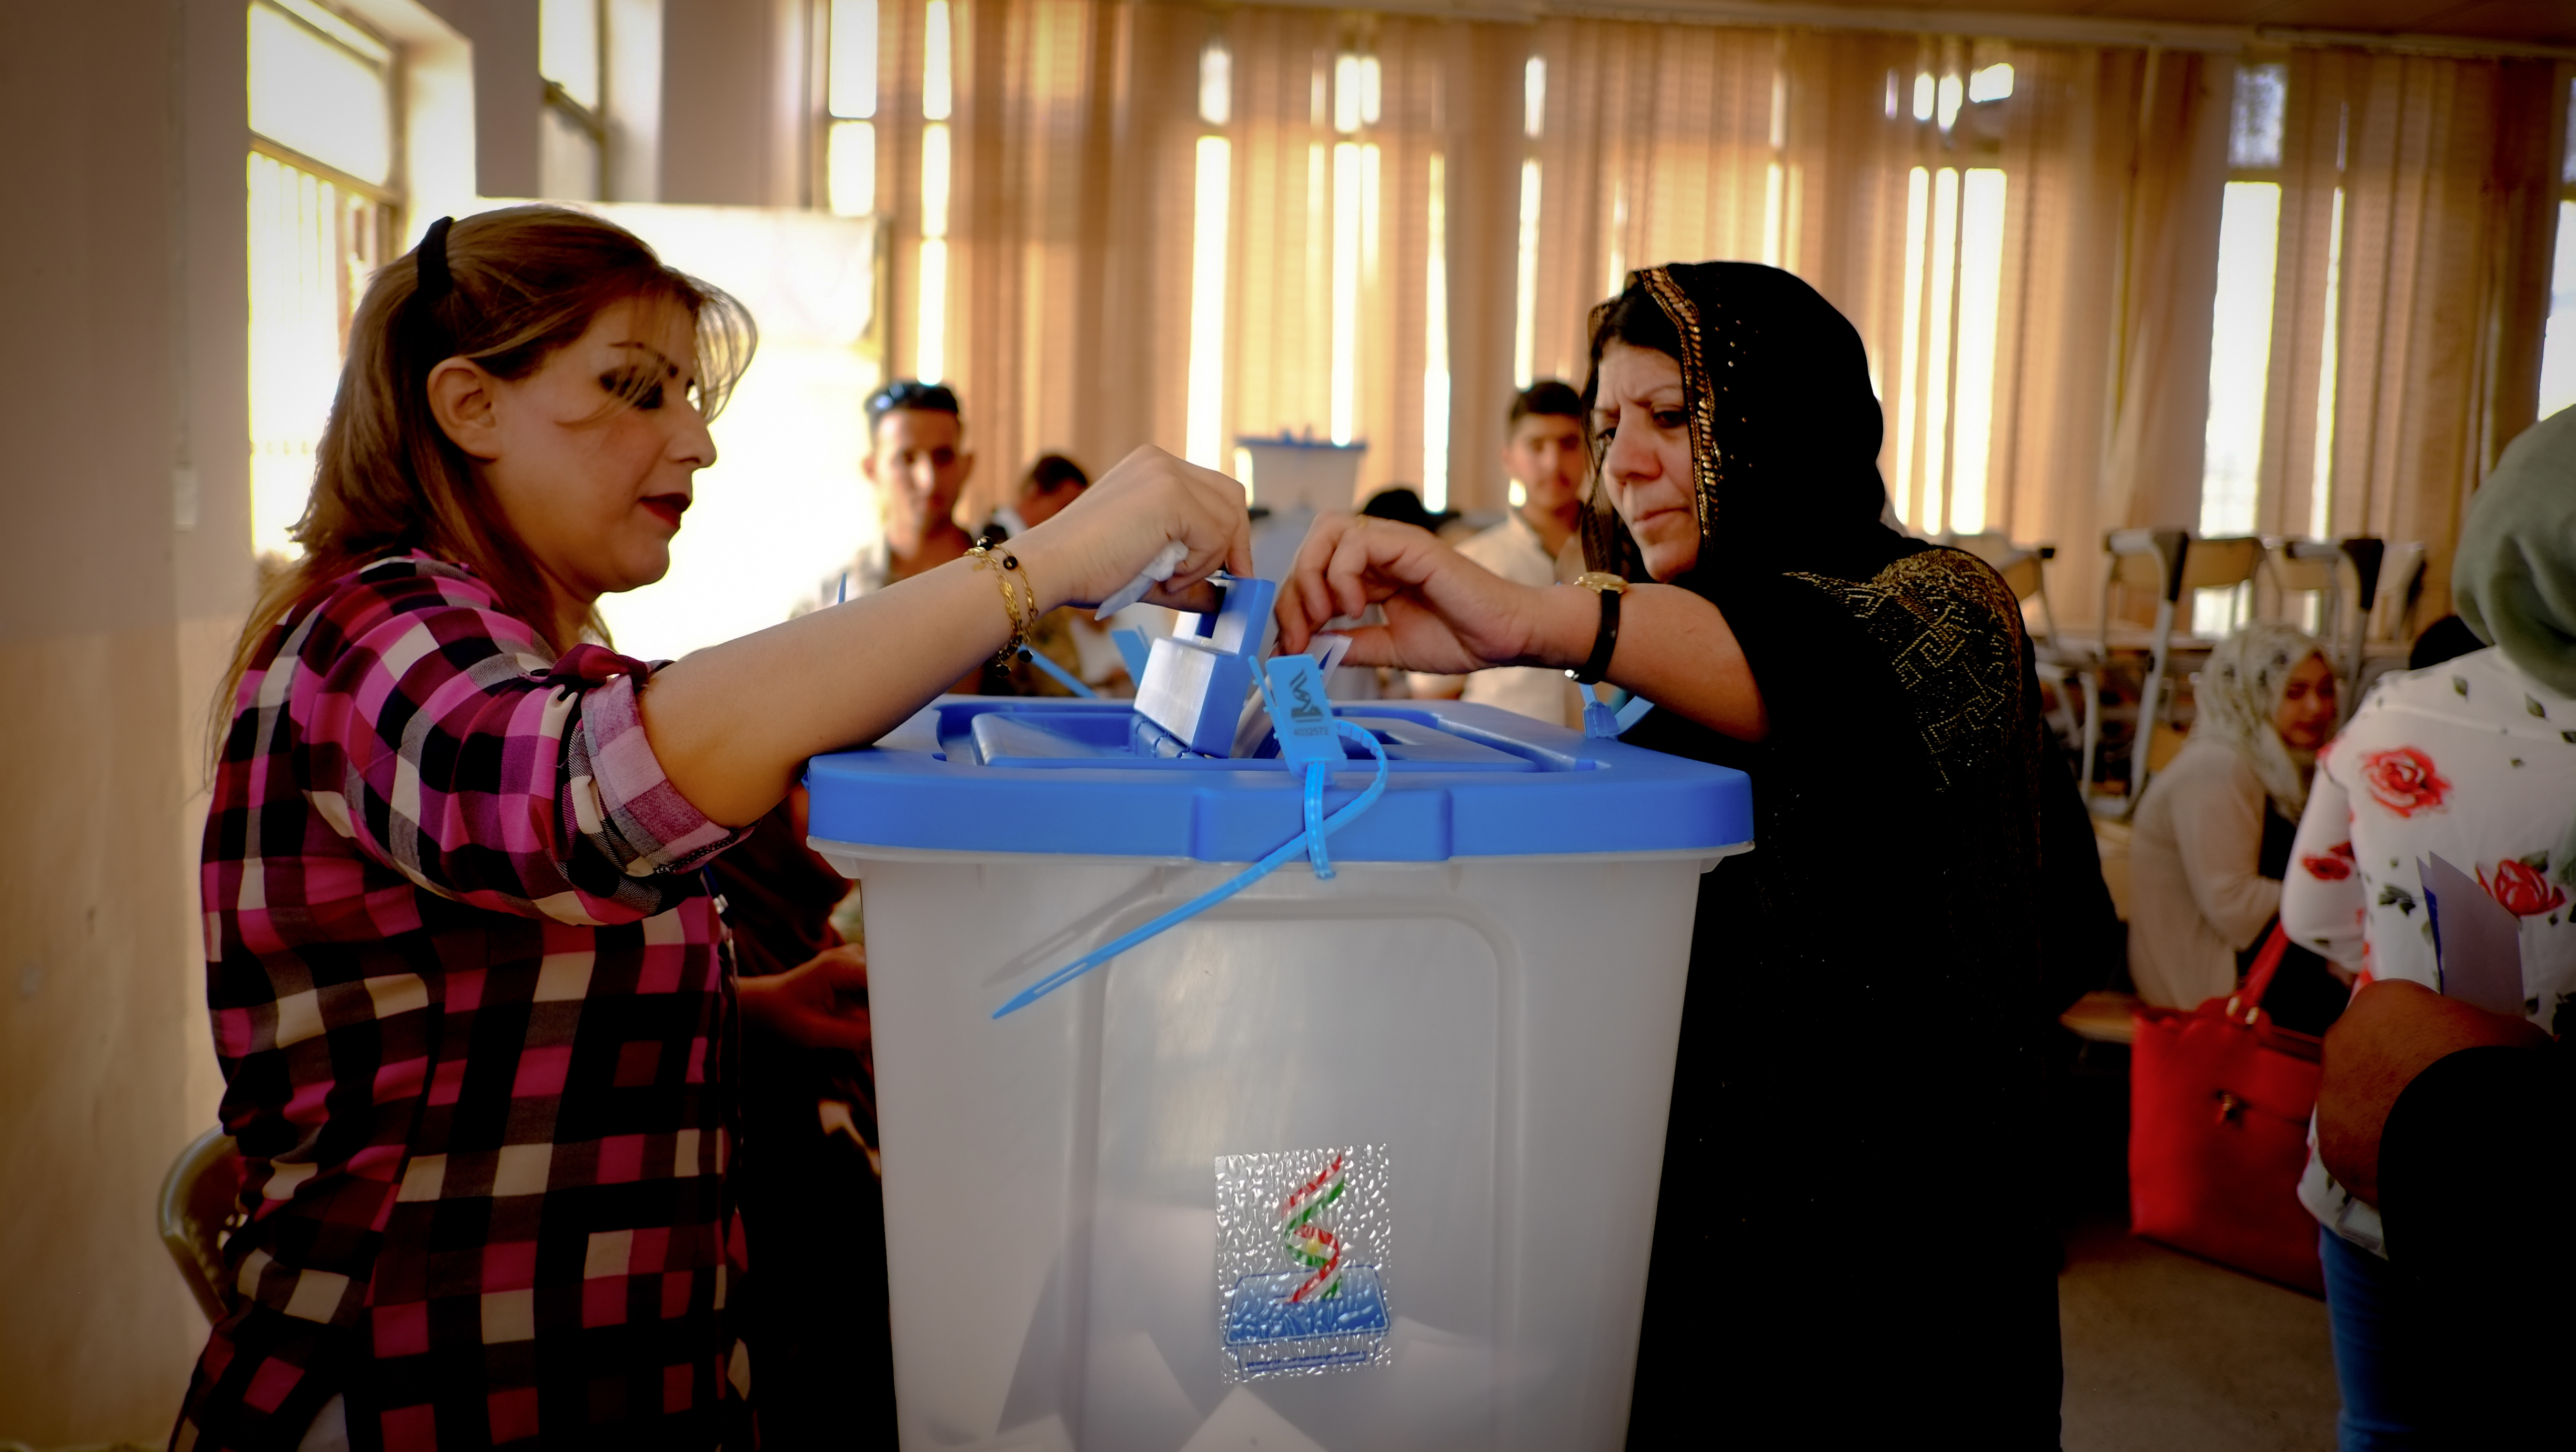 A Kurdish woman puts casts her ballot. Another Kurdish woman holds the cover of the voting slot open.